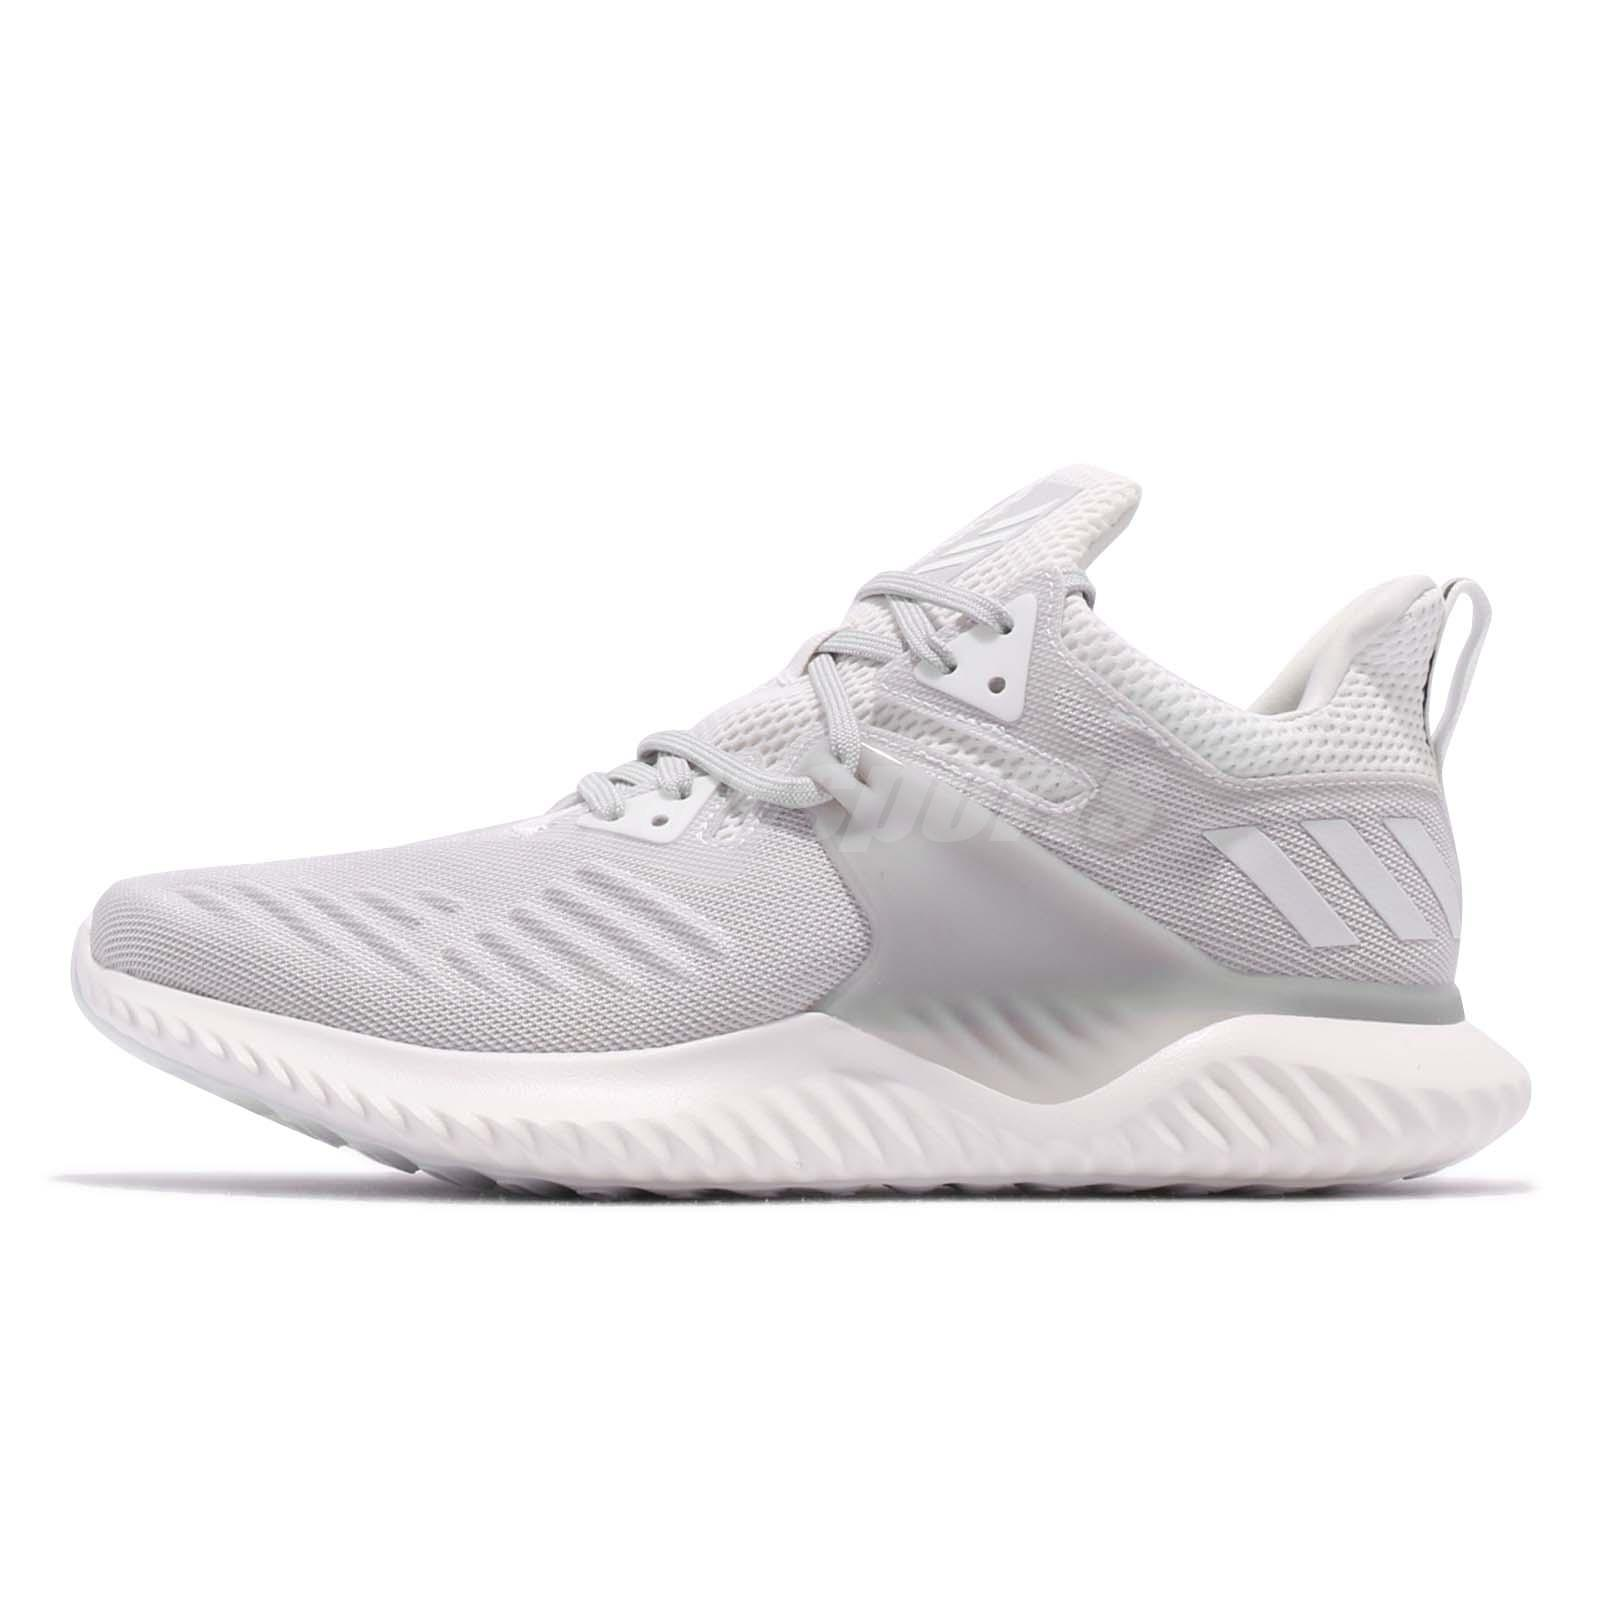 Details about adidas AlphaBOUNCE Beyond 2 M White Grey Men Running Shoes  Sneakers BD7095 f3399bf2b